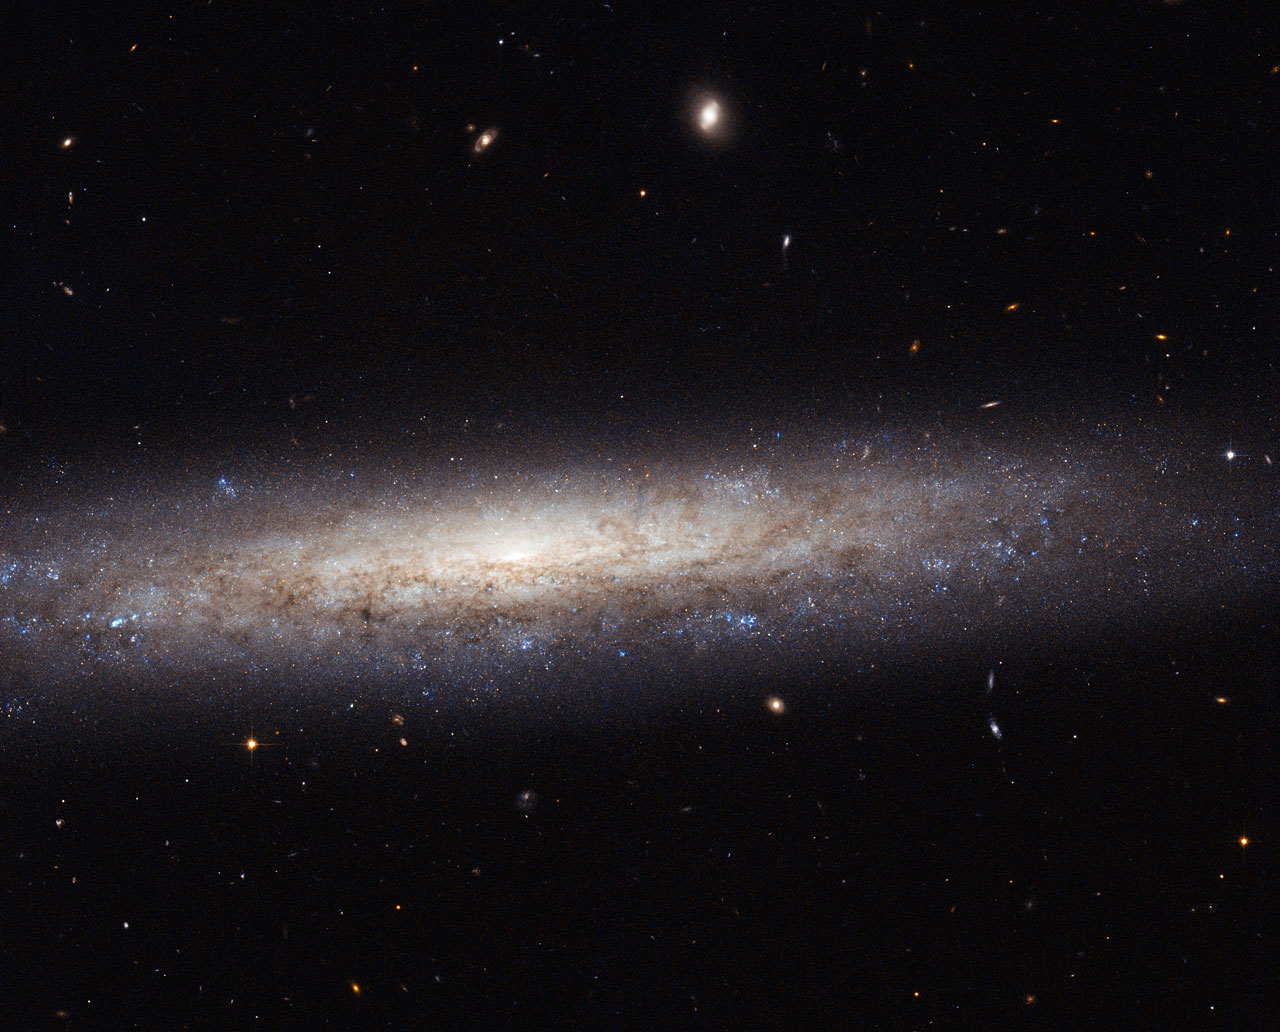 Hubble Catches a Dusty Spiral in Virgo Hubble Catches a Dusty Spiral in Virgo   This magnificent new image taken with the NASA/ESA Hubble Space Telescope shows the edge-on spiral galaxy NGC 4206, located about 70 million light-years away from Earth in the constellation of Virgo.  Captured here are vast streaks of dust, some of which are obscuring the central bulge, which can just be made out in the center of the galaxy. Towards the edges of the galaxy, the scattered clumps, which appear blue in this image, mark areas where stars are being born. The bulge, on the other hand, is composed mostly of much older, redder stars, and very little star formation takes place.  NGC 4206 was imaged as part of a Hubble snapshot survey of nearby edge-on spiral galaxies to measure the effect that the material between the stars — known as the interstellar medium — has on light as it travels through it. Using its Advanced Camera for Surveys, Hubble can reveal information about the dusty material and hydrogen gas in the cold parts of the interstellar medium. Astronomers are then able to map the absorption and scattering of light by the material — an effect known as extinction — which causes objects to appear redder to us, the observers.  NGC 4206 is visible with most moderate amateur telescopes at 13th magnitude. It was discovered by Hanoverian-born British astronomer, William Herschel on April 17, 1784.  Image Credit: ESA/Hubble & NASA, Acknowledgement: Nick Rose Explanation from: http://www.nasa.gov/content/goddard/hubble-catches-a-dusty-spiral-in-virgo/